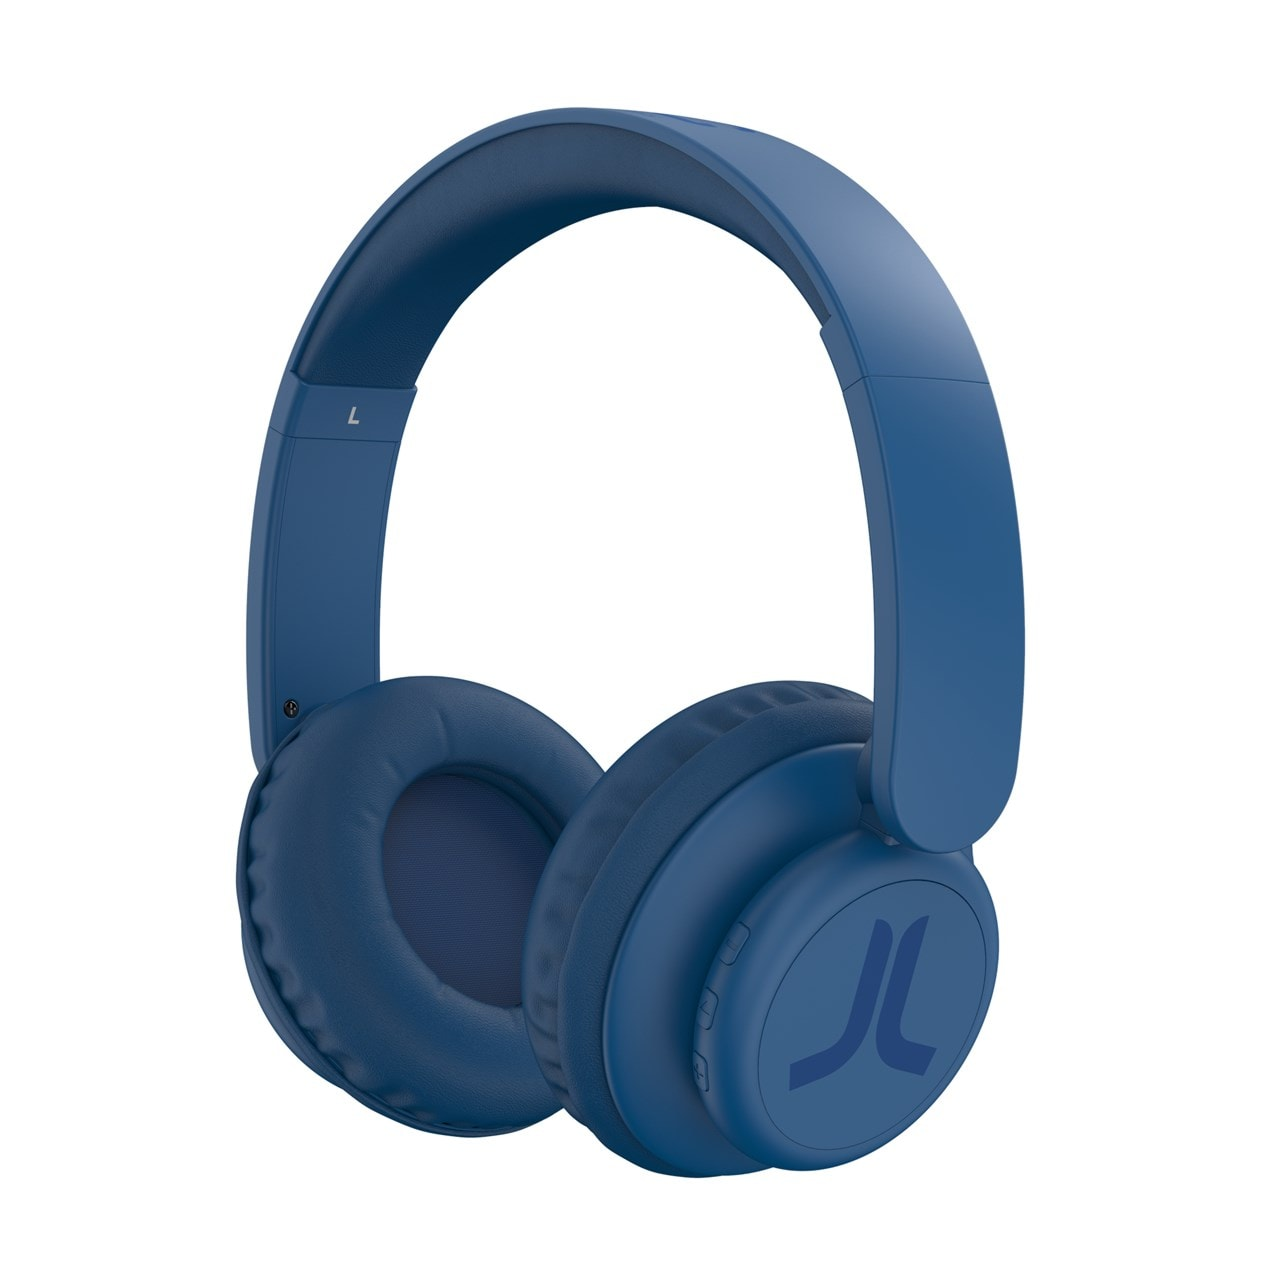 WESC ON EAR HEADPHONES (NAVY BLUE) [Accessories]